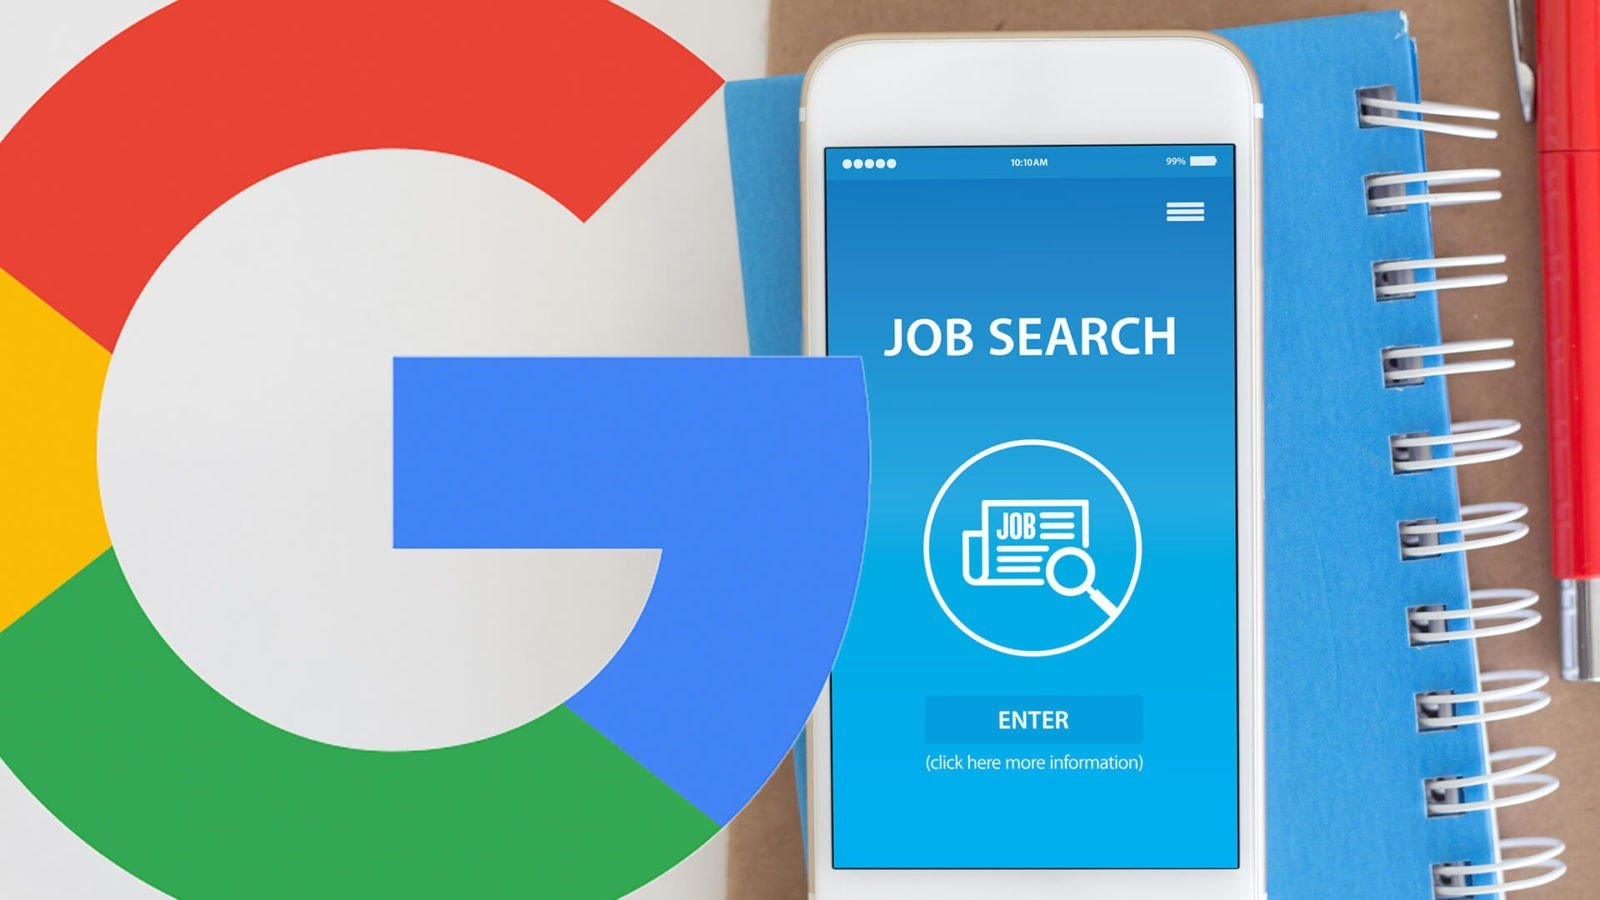 Google's job listings search is now open to all job search sites & developers